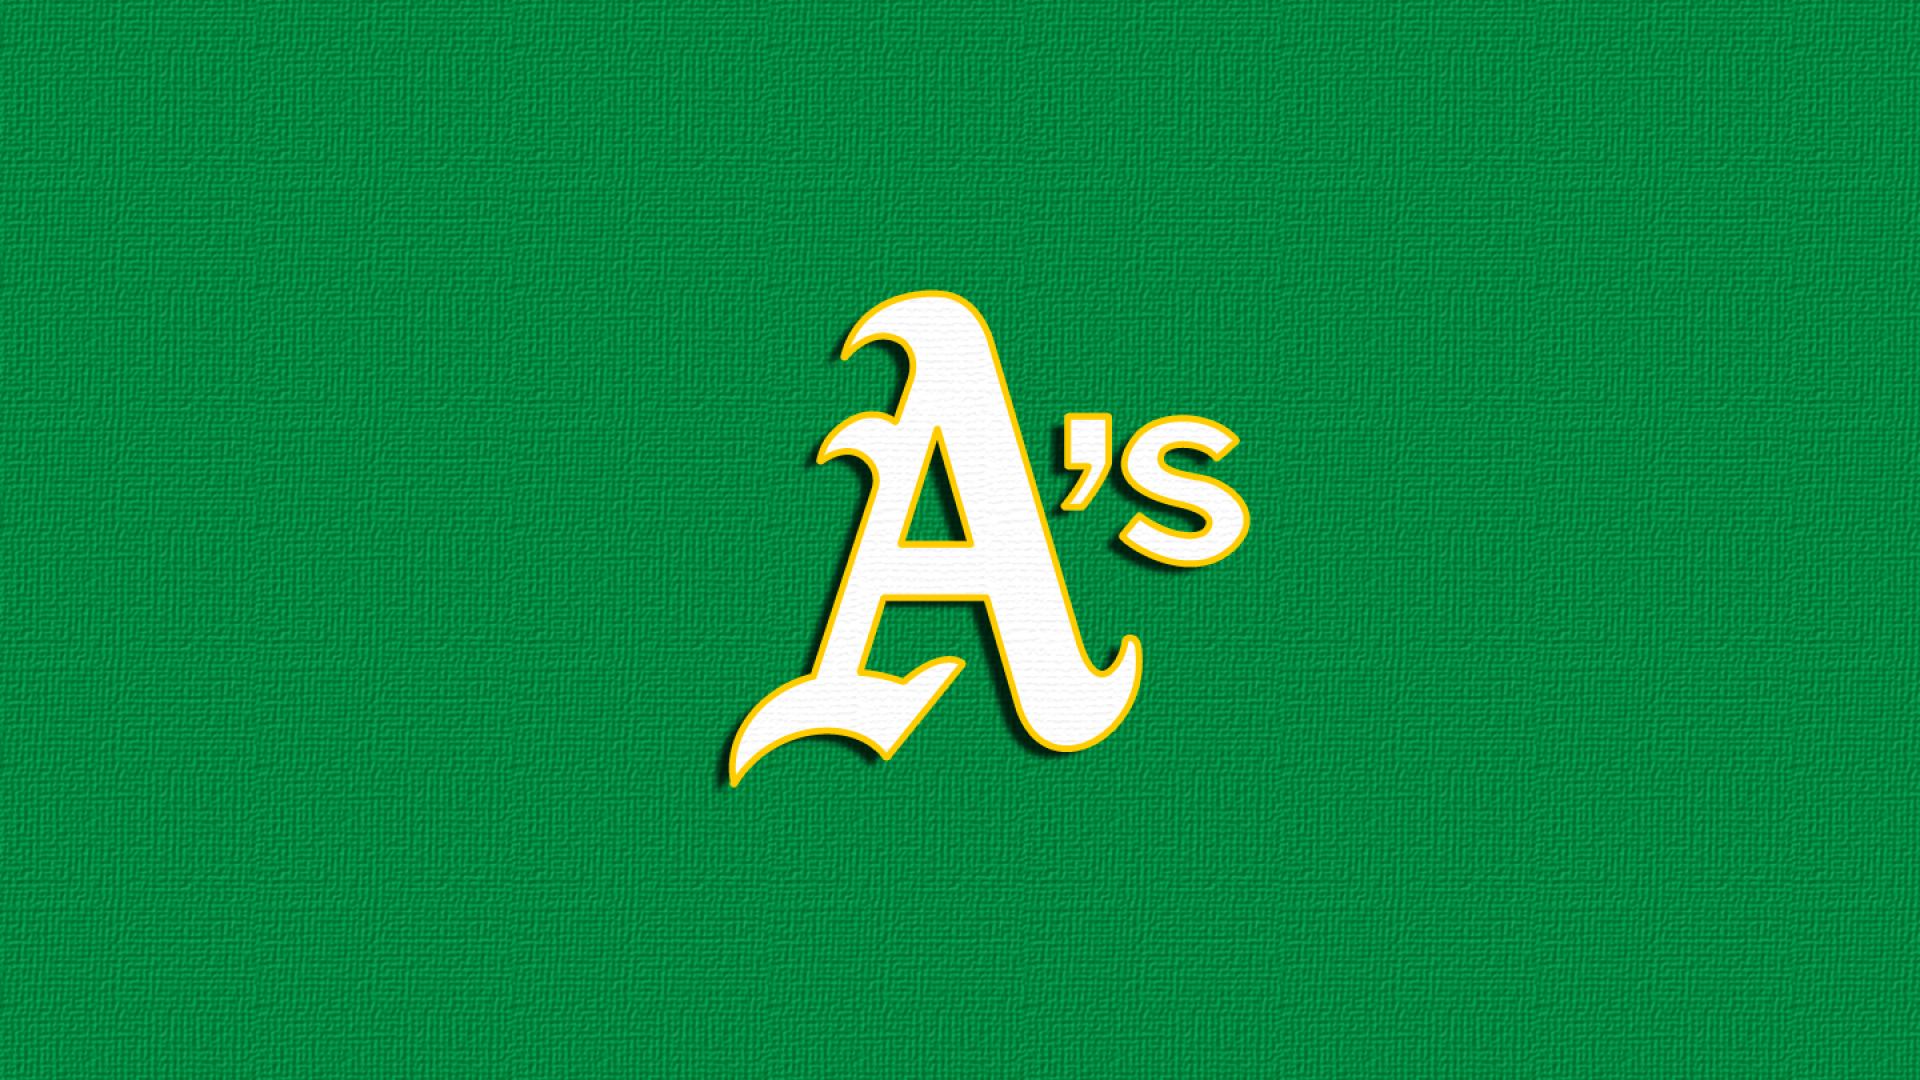 Oakland Athletics Wallpaper 1920x1080